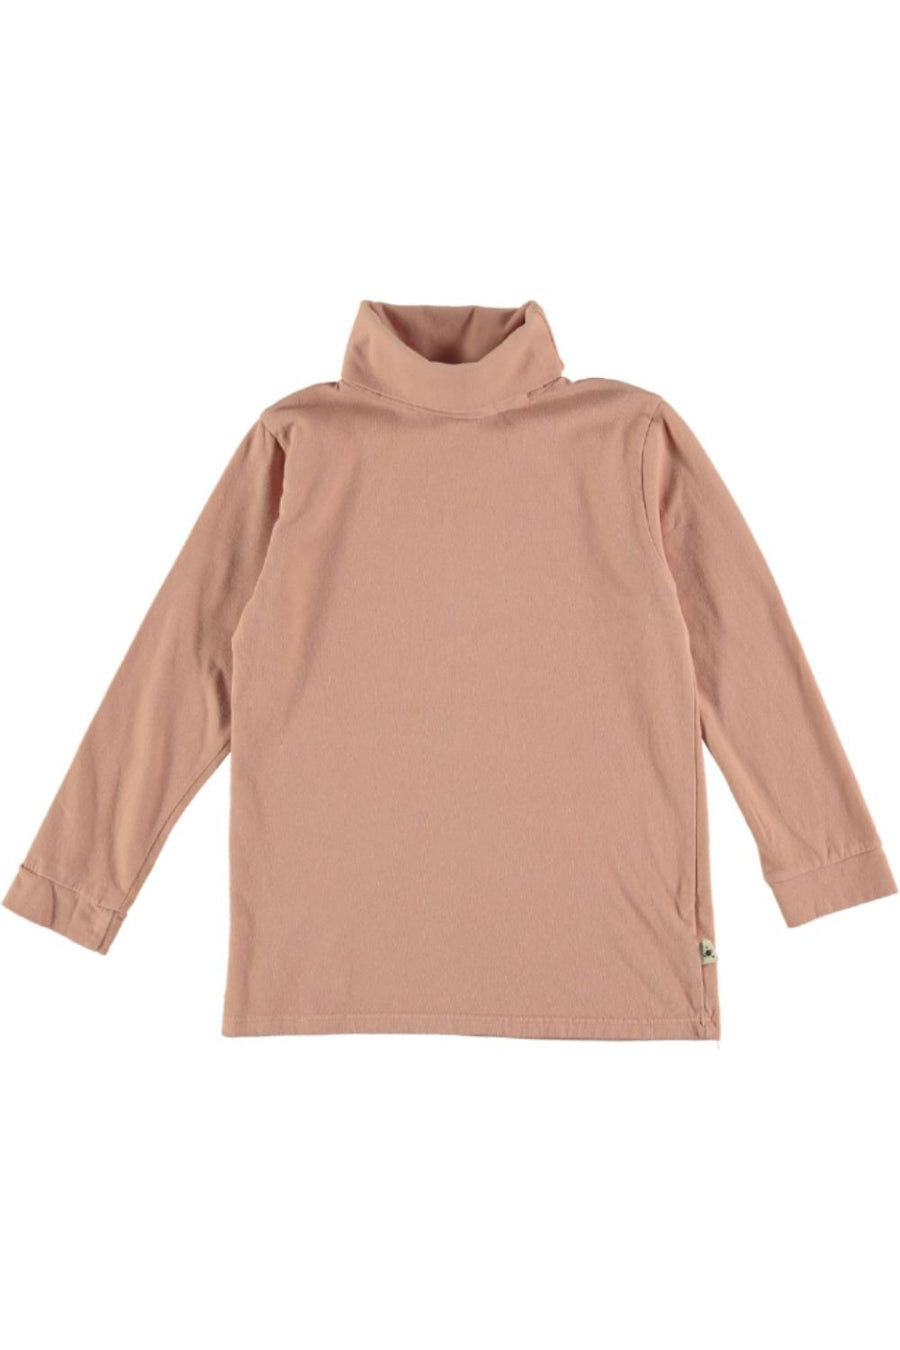 ORGANIC ROLL NECK KIDS T-SHIRT BASIC